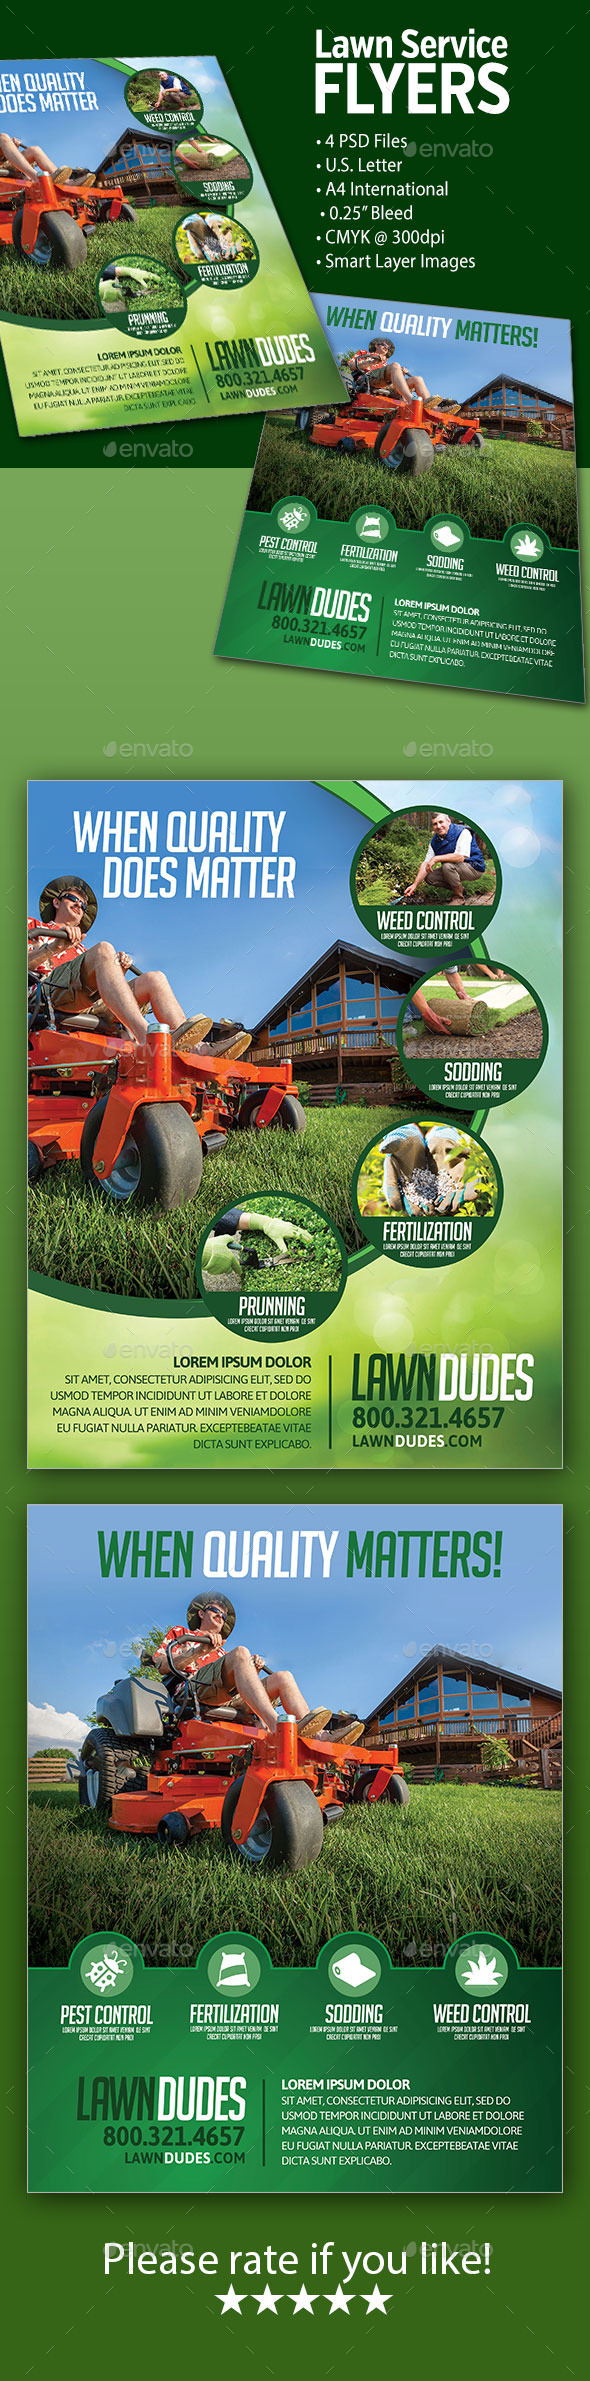 Lawn Service Flyers - Commerce Flyers